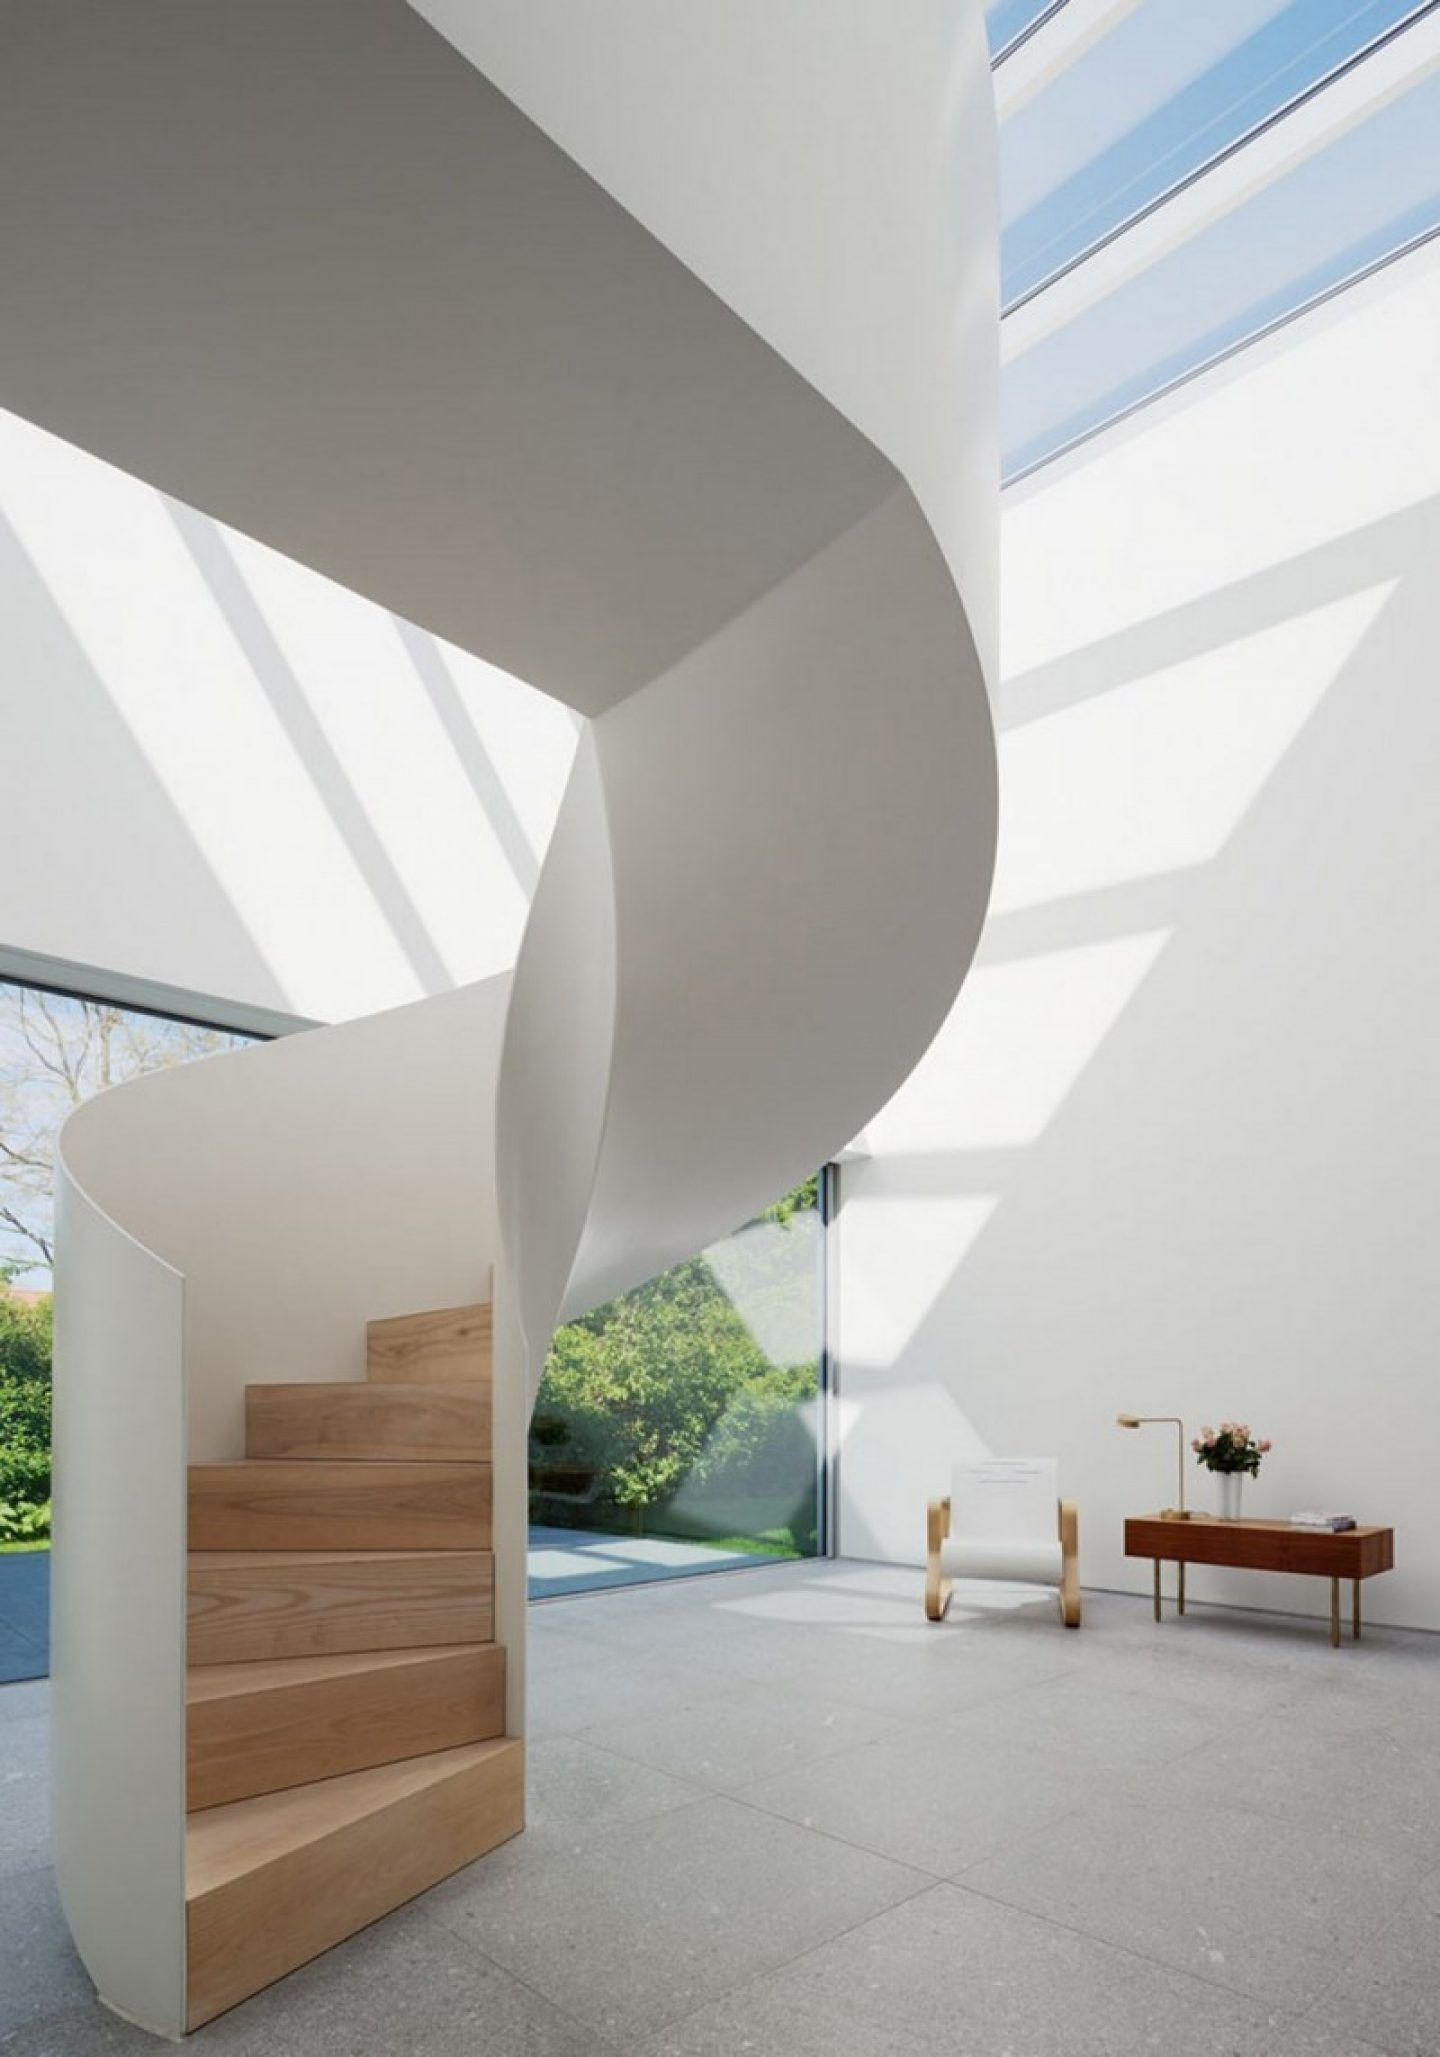 lindvall_architecture-4